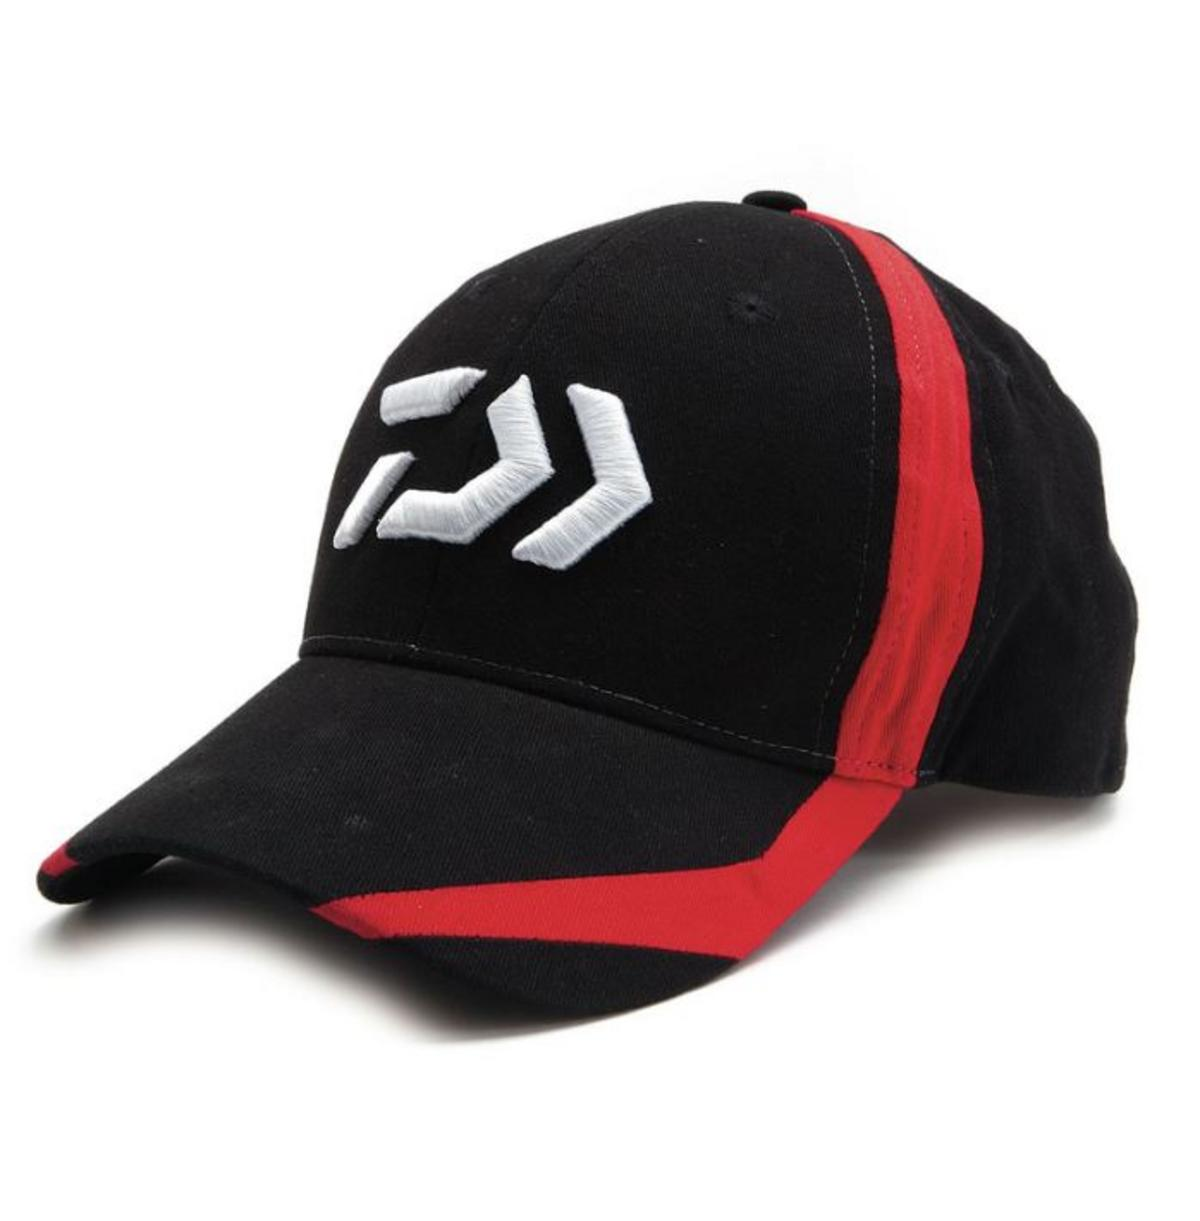 New Daiwa D-Vector Logo Fishing Cap - Black / Red - DC3